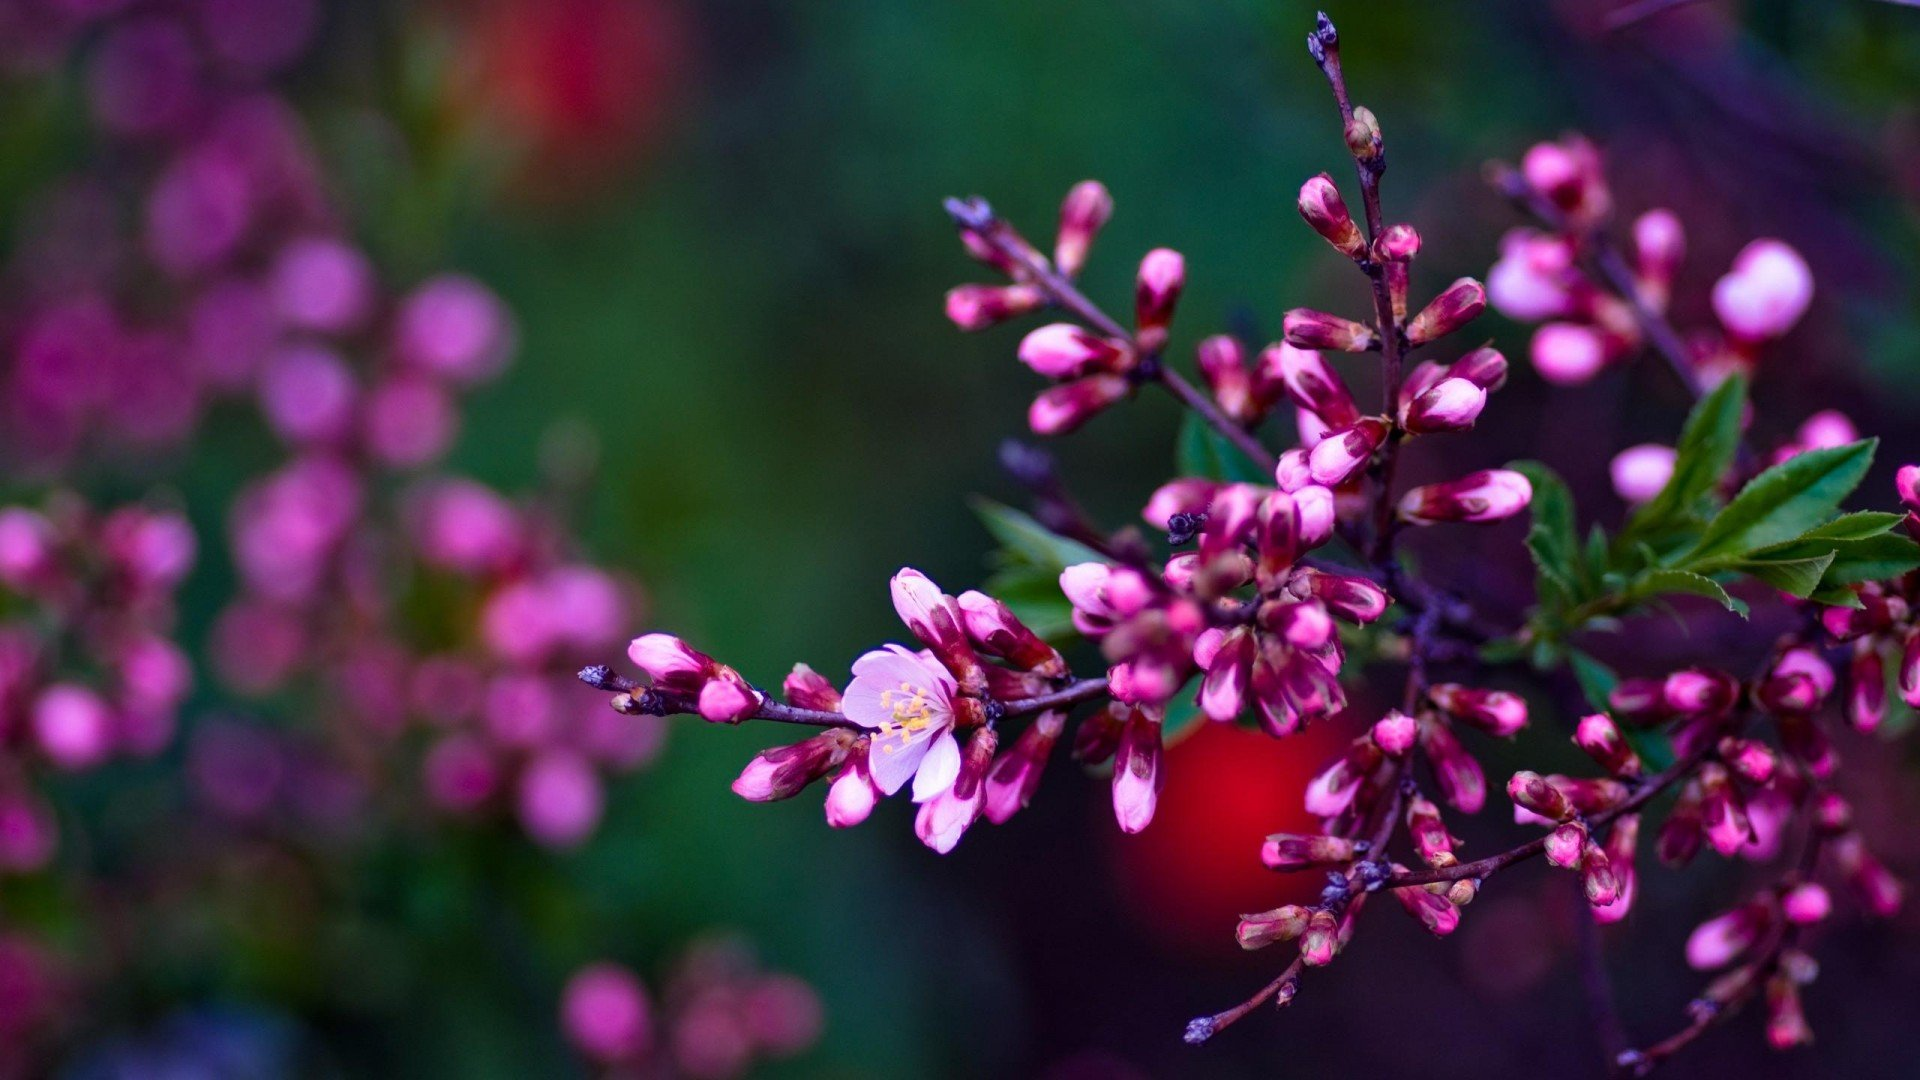 Spring Flowers Backgrounds HD 1920x1080